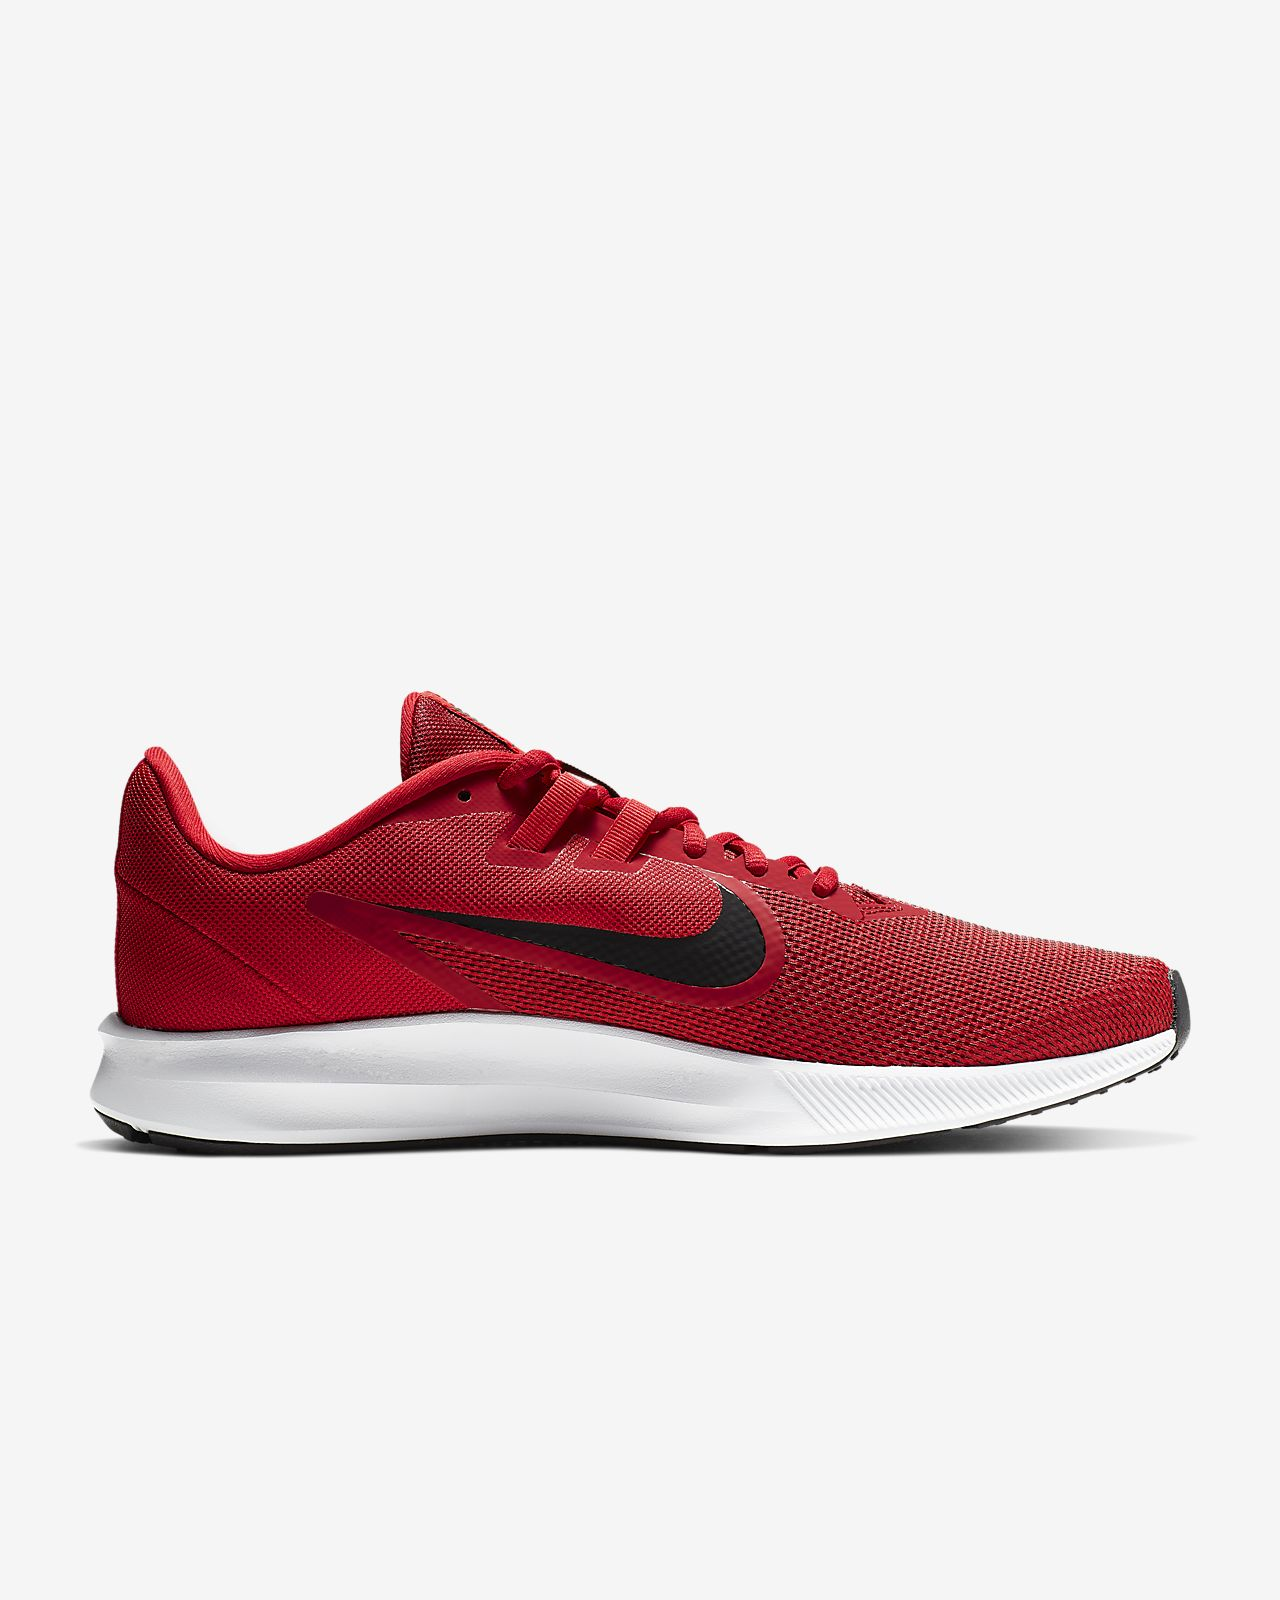 Chaussure de running Nike Downshifter 9 pour Homme. Nike FR